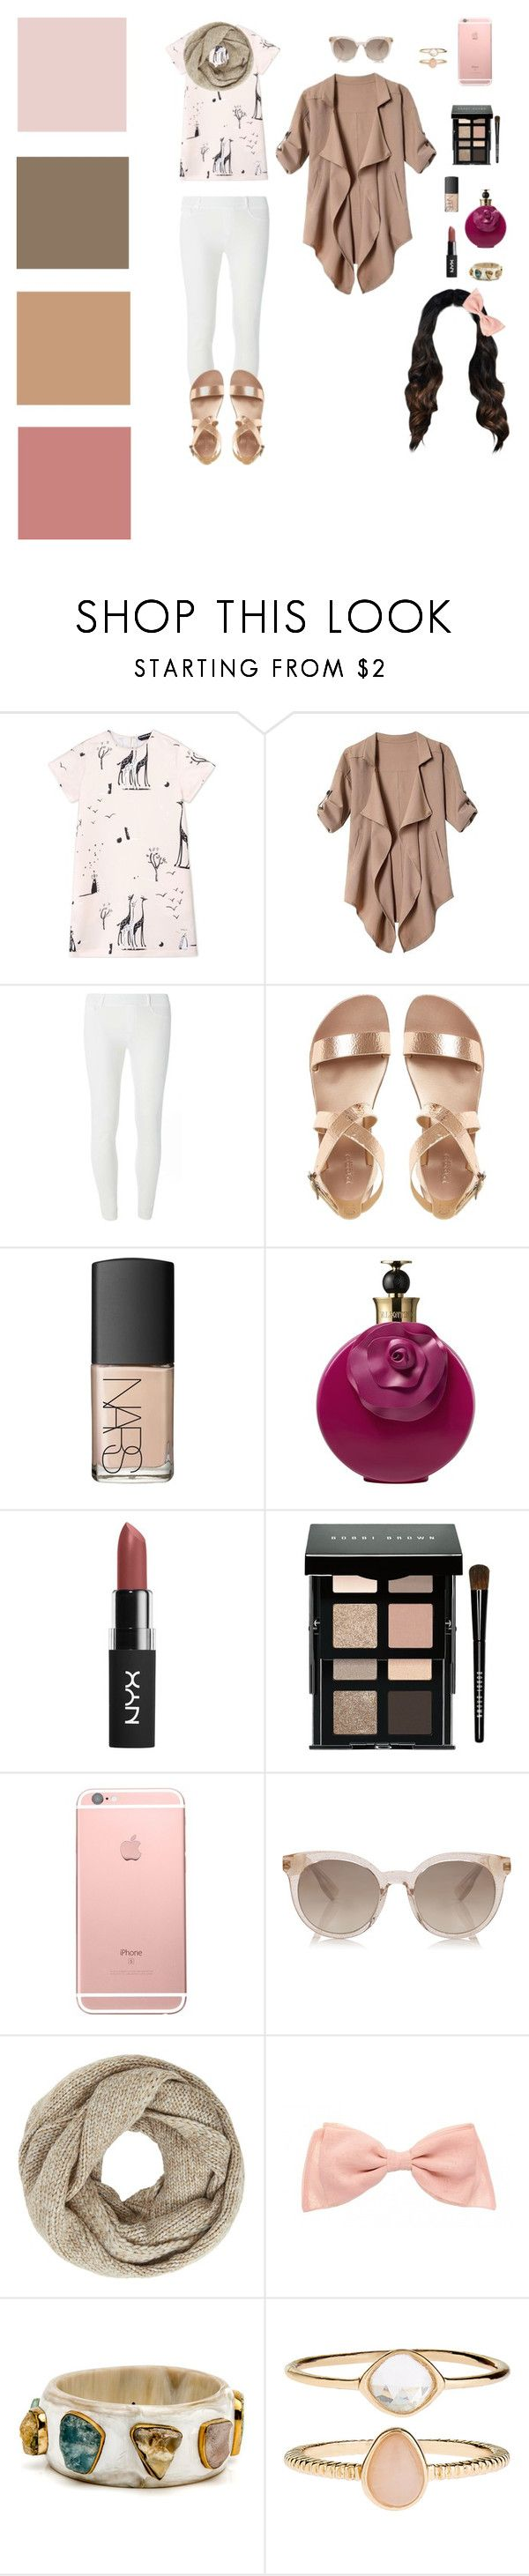 """""""Untitled #752"""" by aquagirl6677 ❤ liked on Polyvore featuring Rochas, Dorothy Perkins, NARS Cosmetics, Valentino, Bobbi Brown Cosmetics, John Lewis, Accessorize, outfit, white and set"""